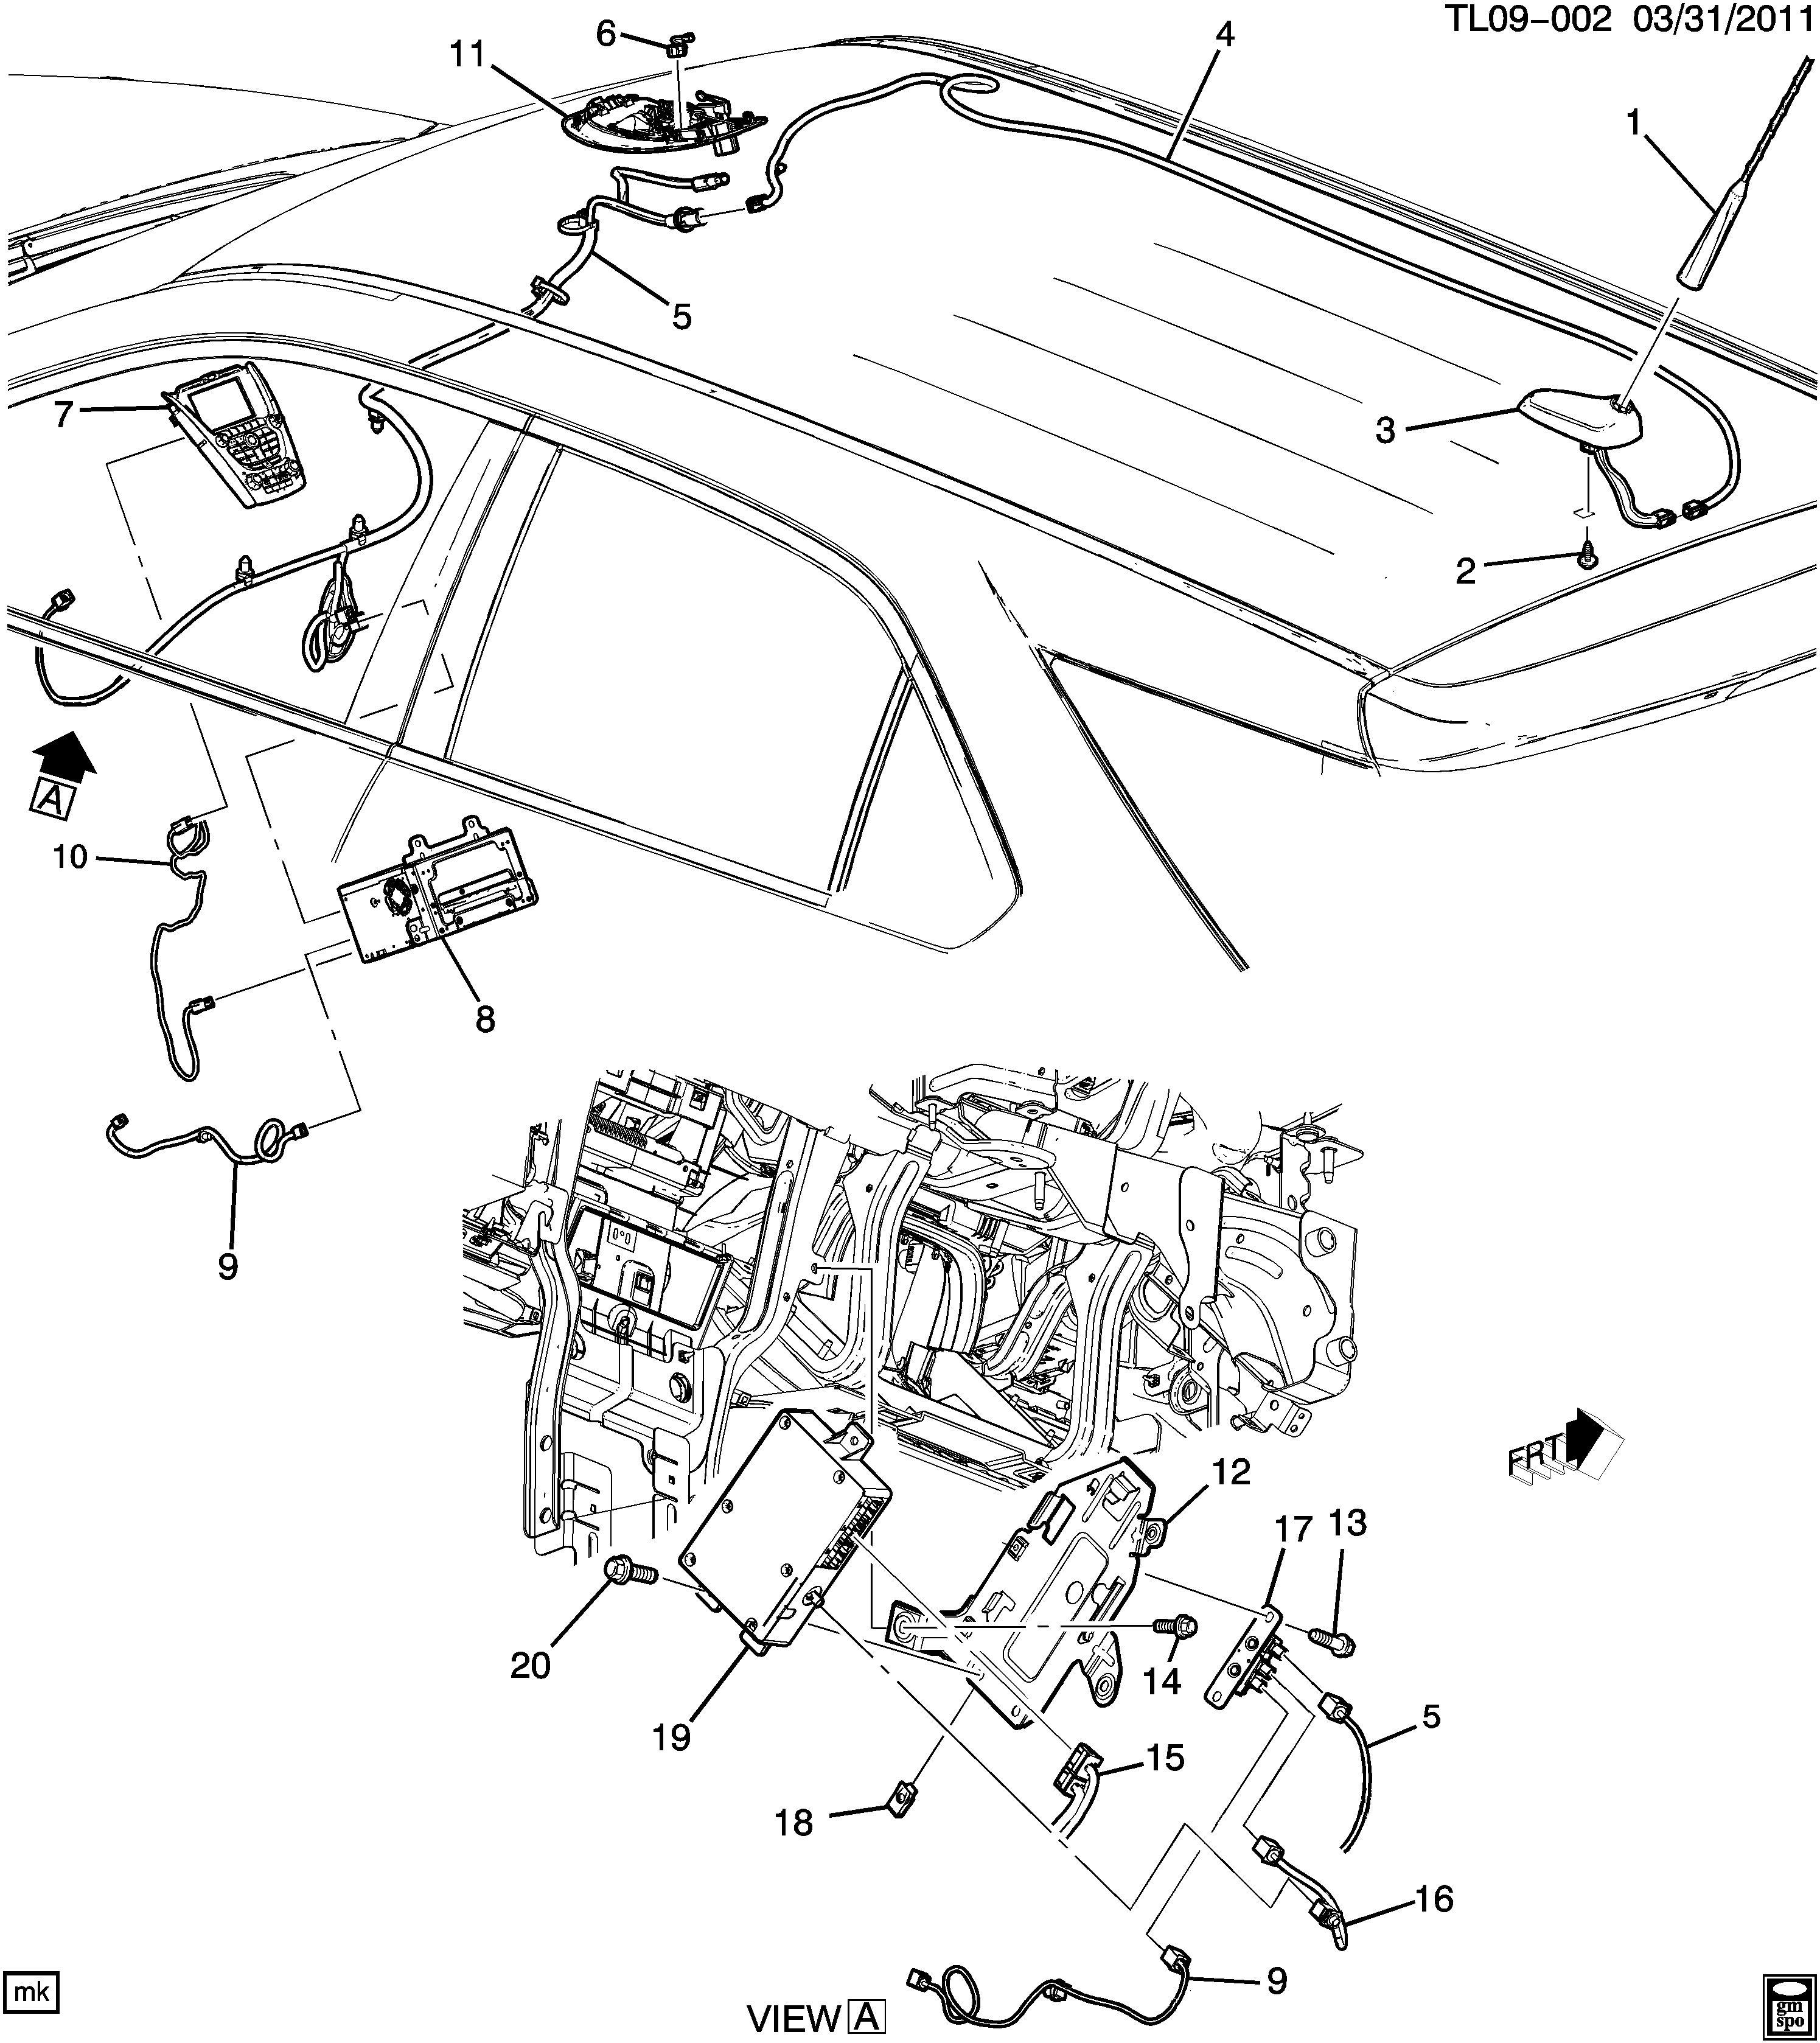 RepairGuideContent as well Fuse Box Location 1999 Harley Davidson Softail Wiring Diagrams likewise ShowAssembly besides 2005 Buick Lacrosse Blower Motor Fuse Location likewise 2000 Lincoln Town Car Wiring Diagram. on buick stereo wiring diagram